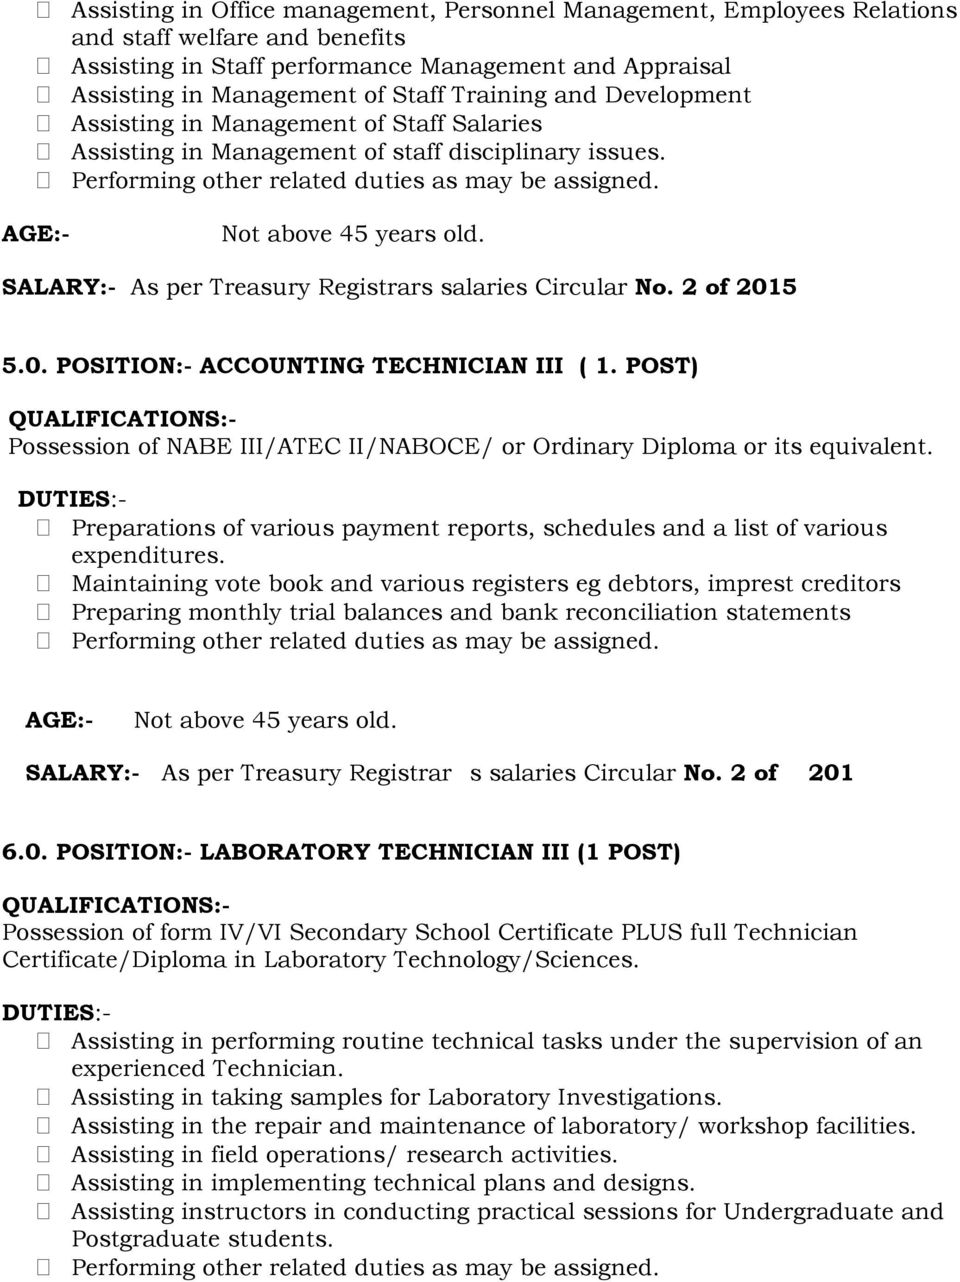 5 5.0. POSITION:- ACCOUNTING TECHNICIAN III ( 1. POST) Possession of NABE III/ATEC II/NABOCE/ or Ordinary Diploma or its equivalent.